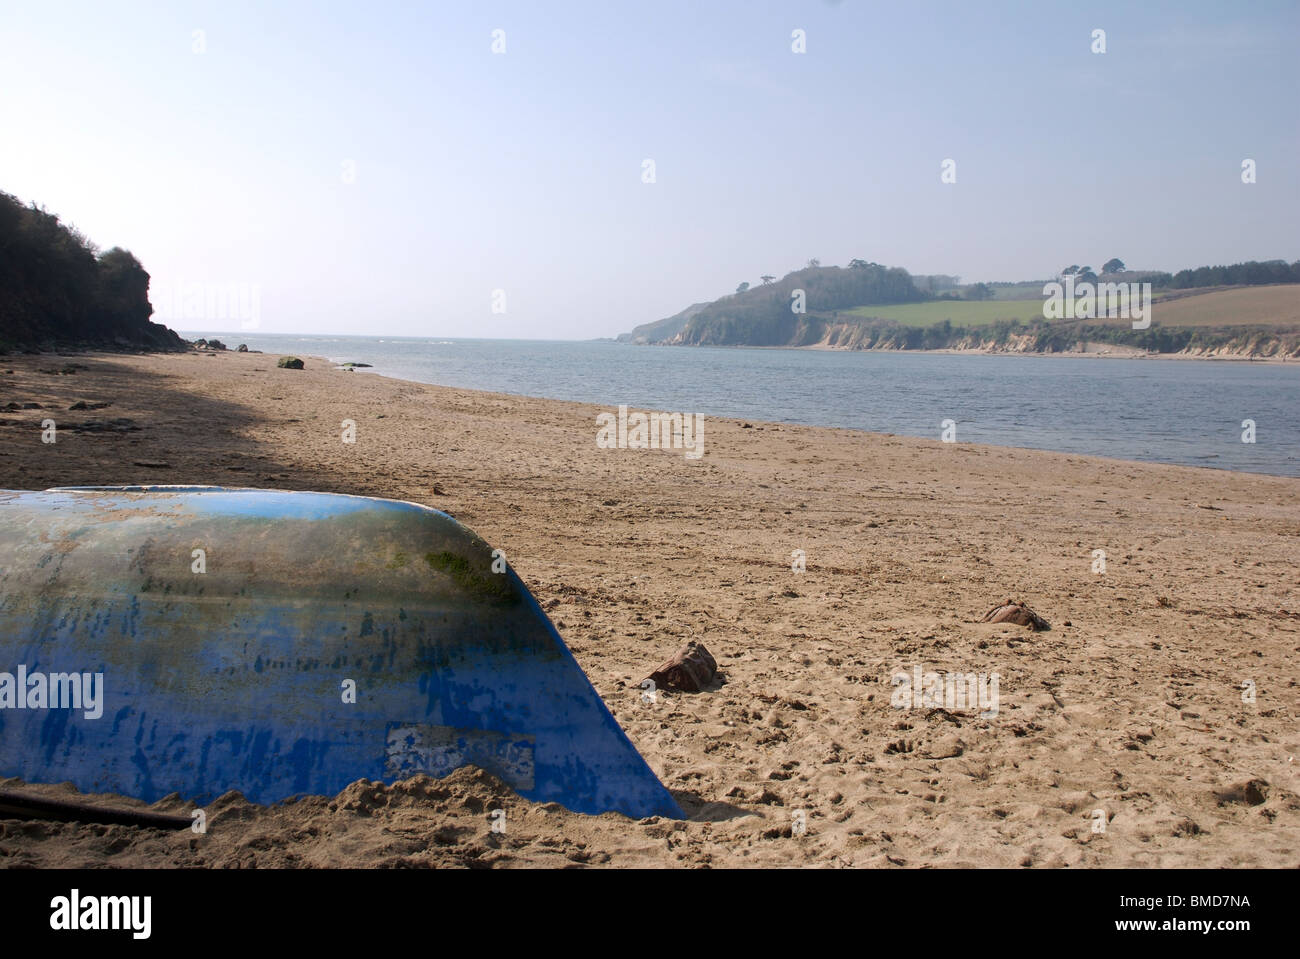 Upturned blue boat and bicycle wheel, Erme estuary, near Kingston, South Hams, Devon, UK - Stock Image